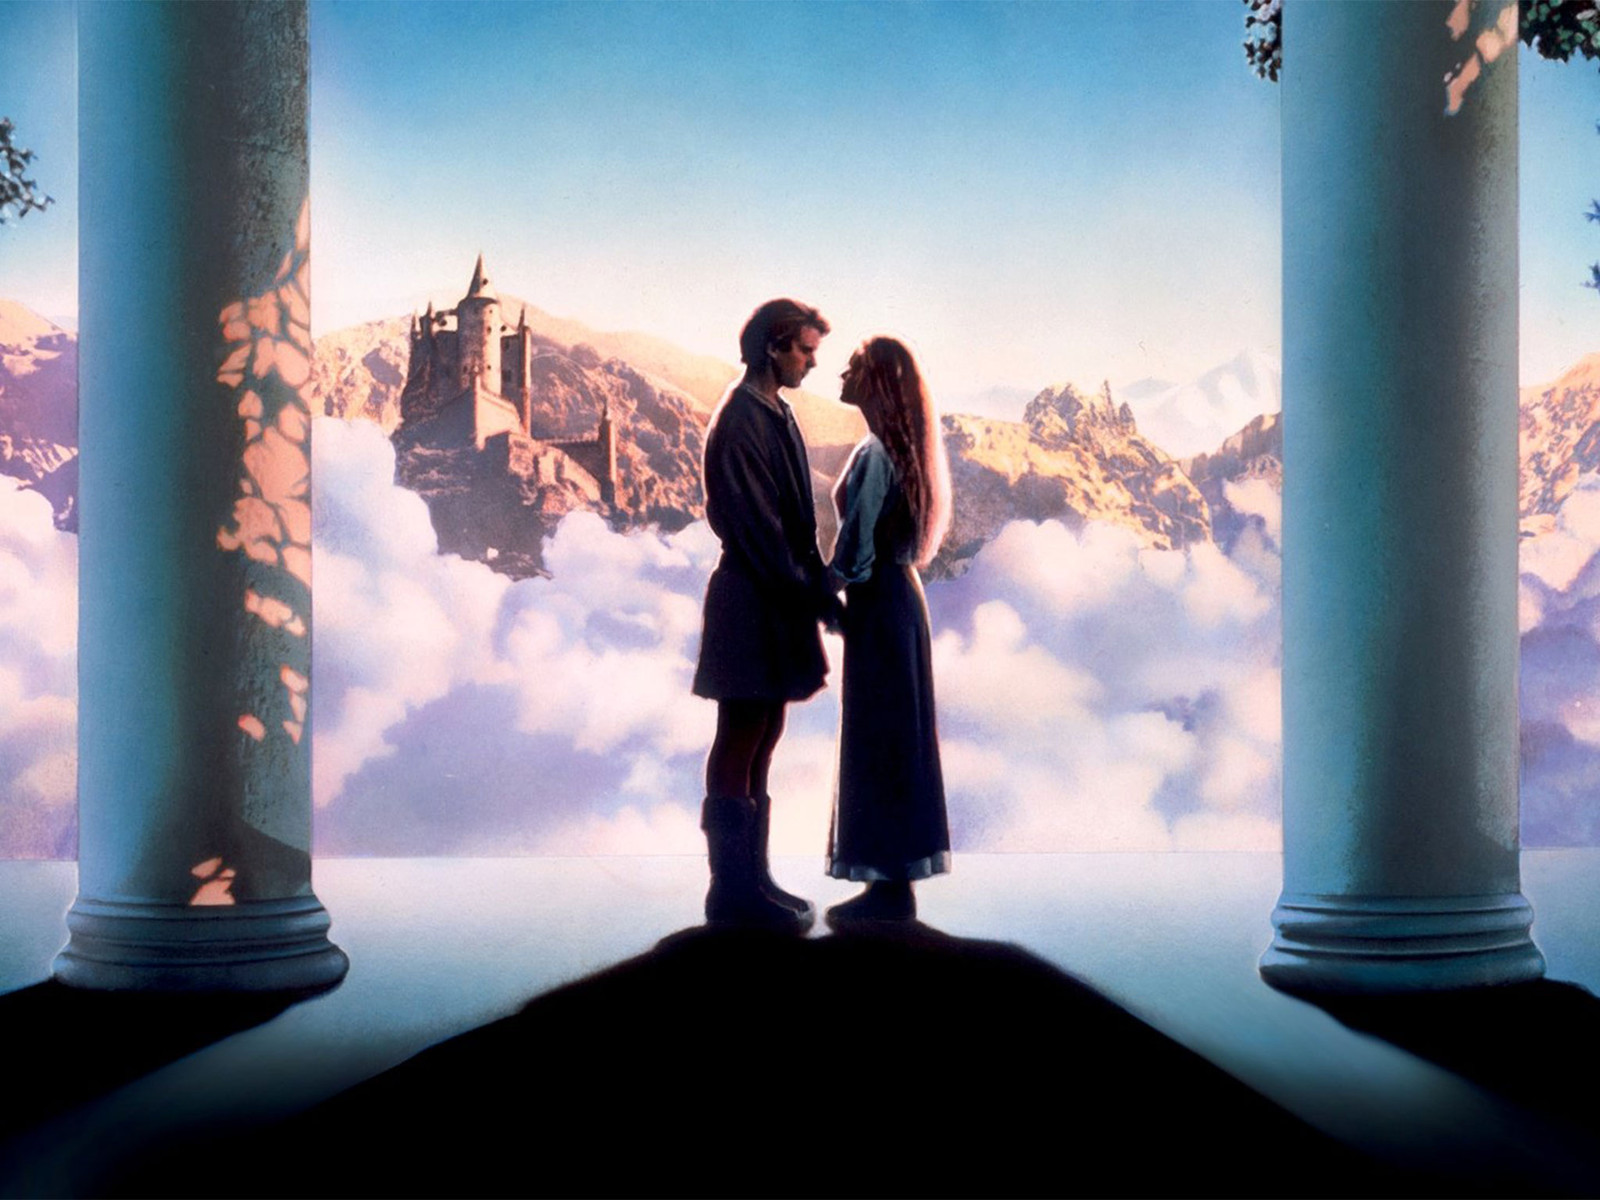 Review 8: The Princess Bride